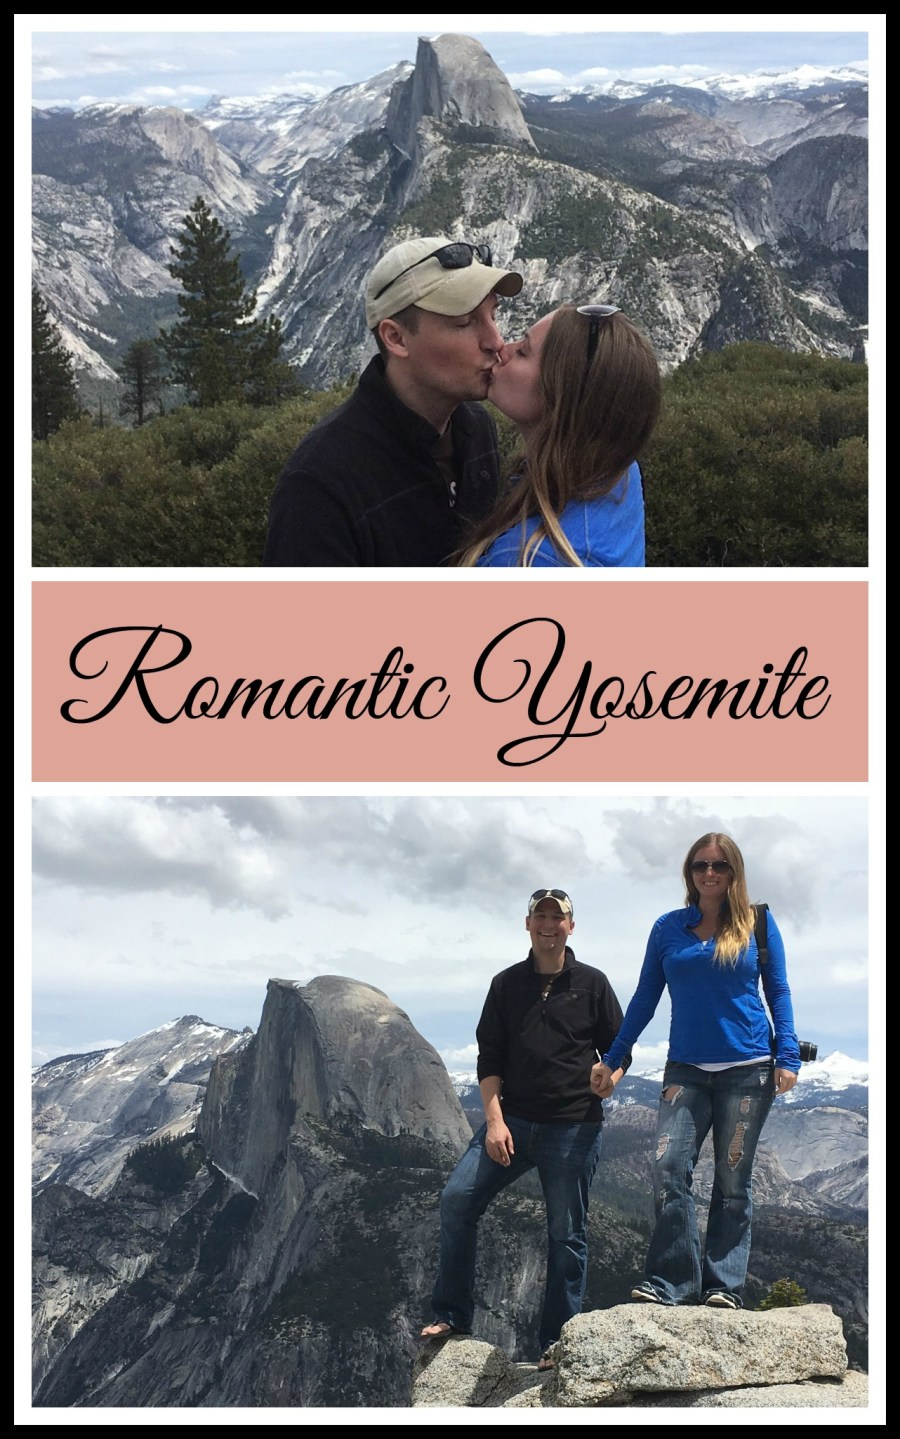 Romantic Yosemite